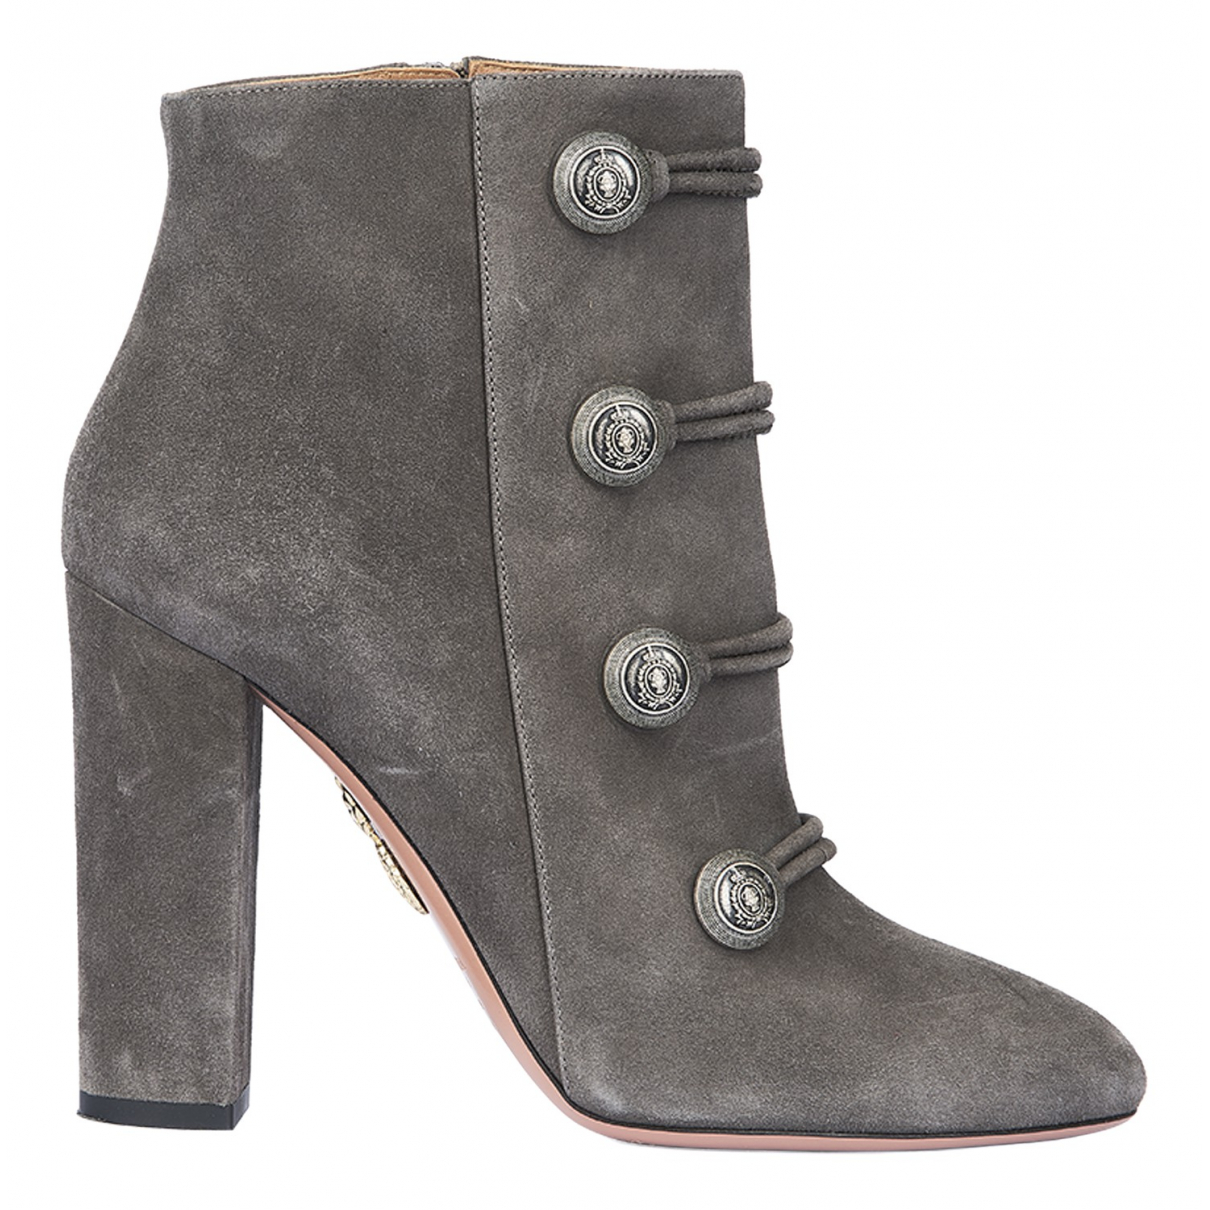 Aquazzura N Grey Suede Ankle boots for Women 6.5 UK